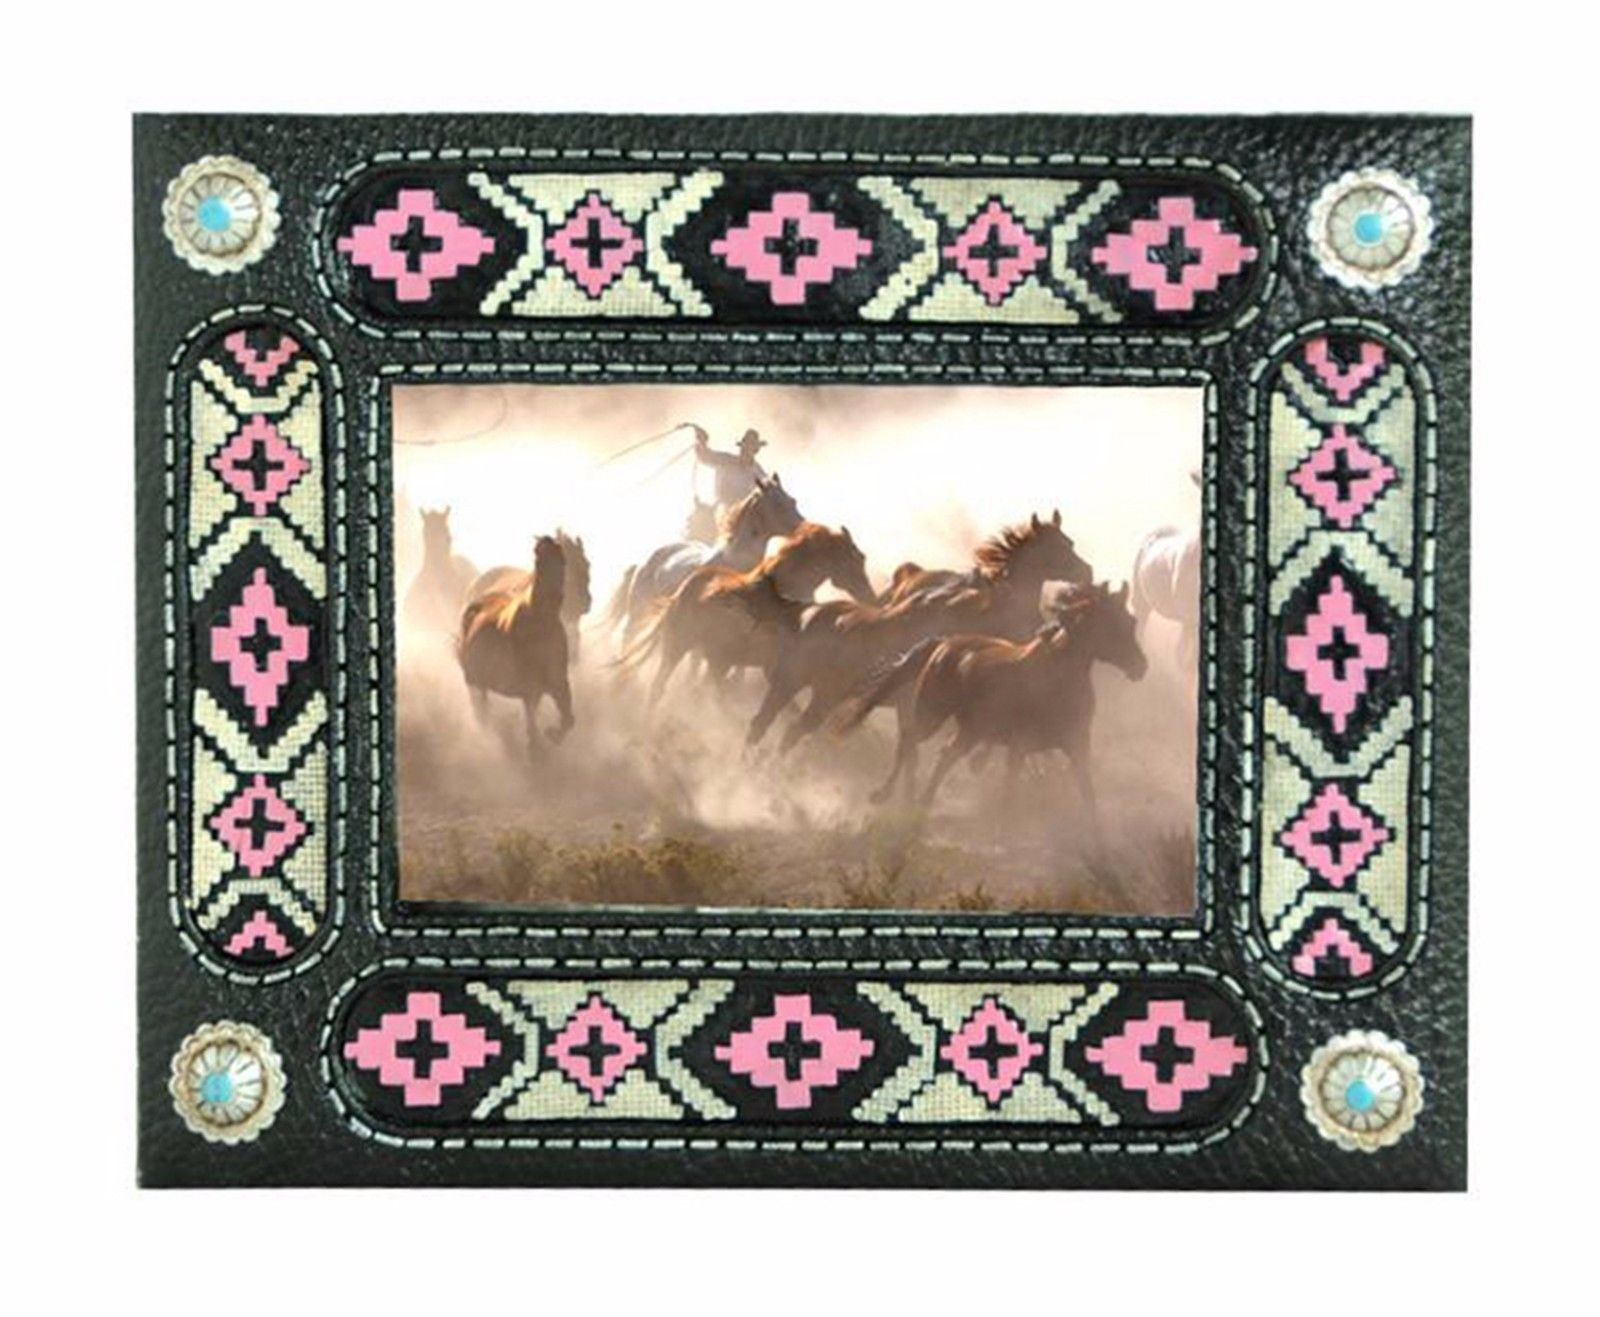 Western Style Decorative Picture Frame Home Decor Montana West Black Pink Aztec